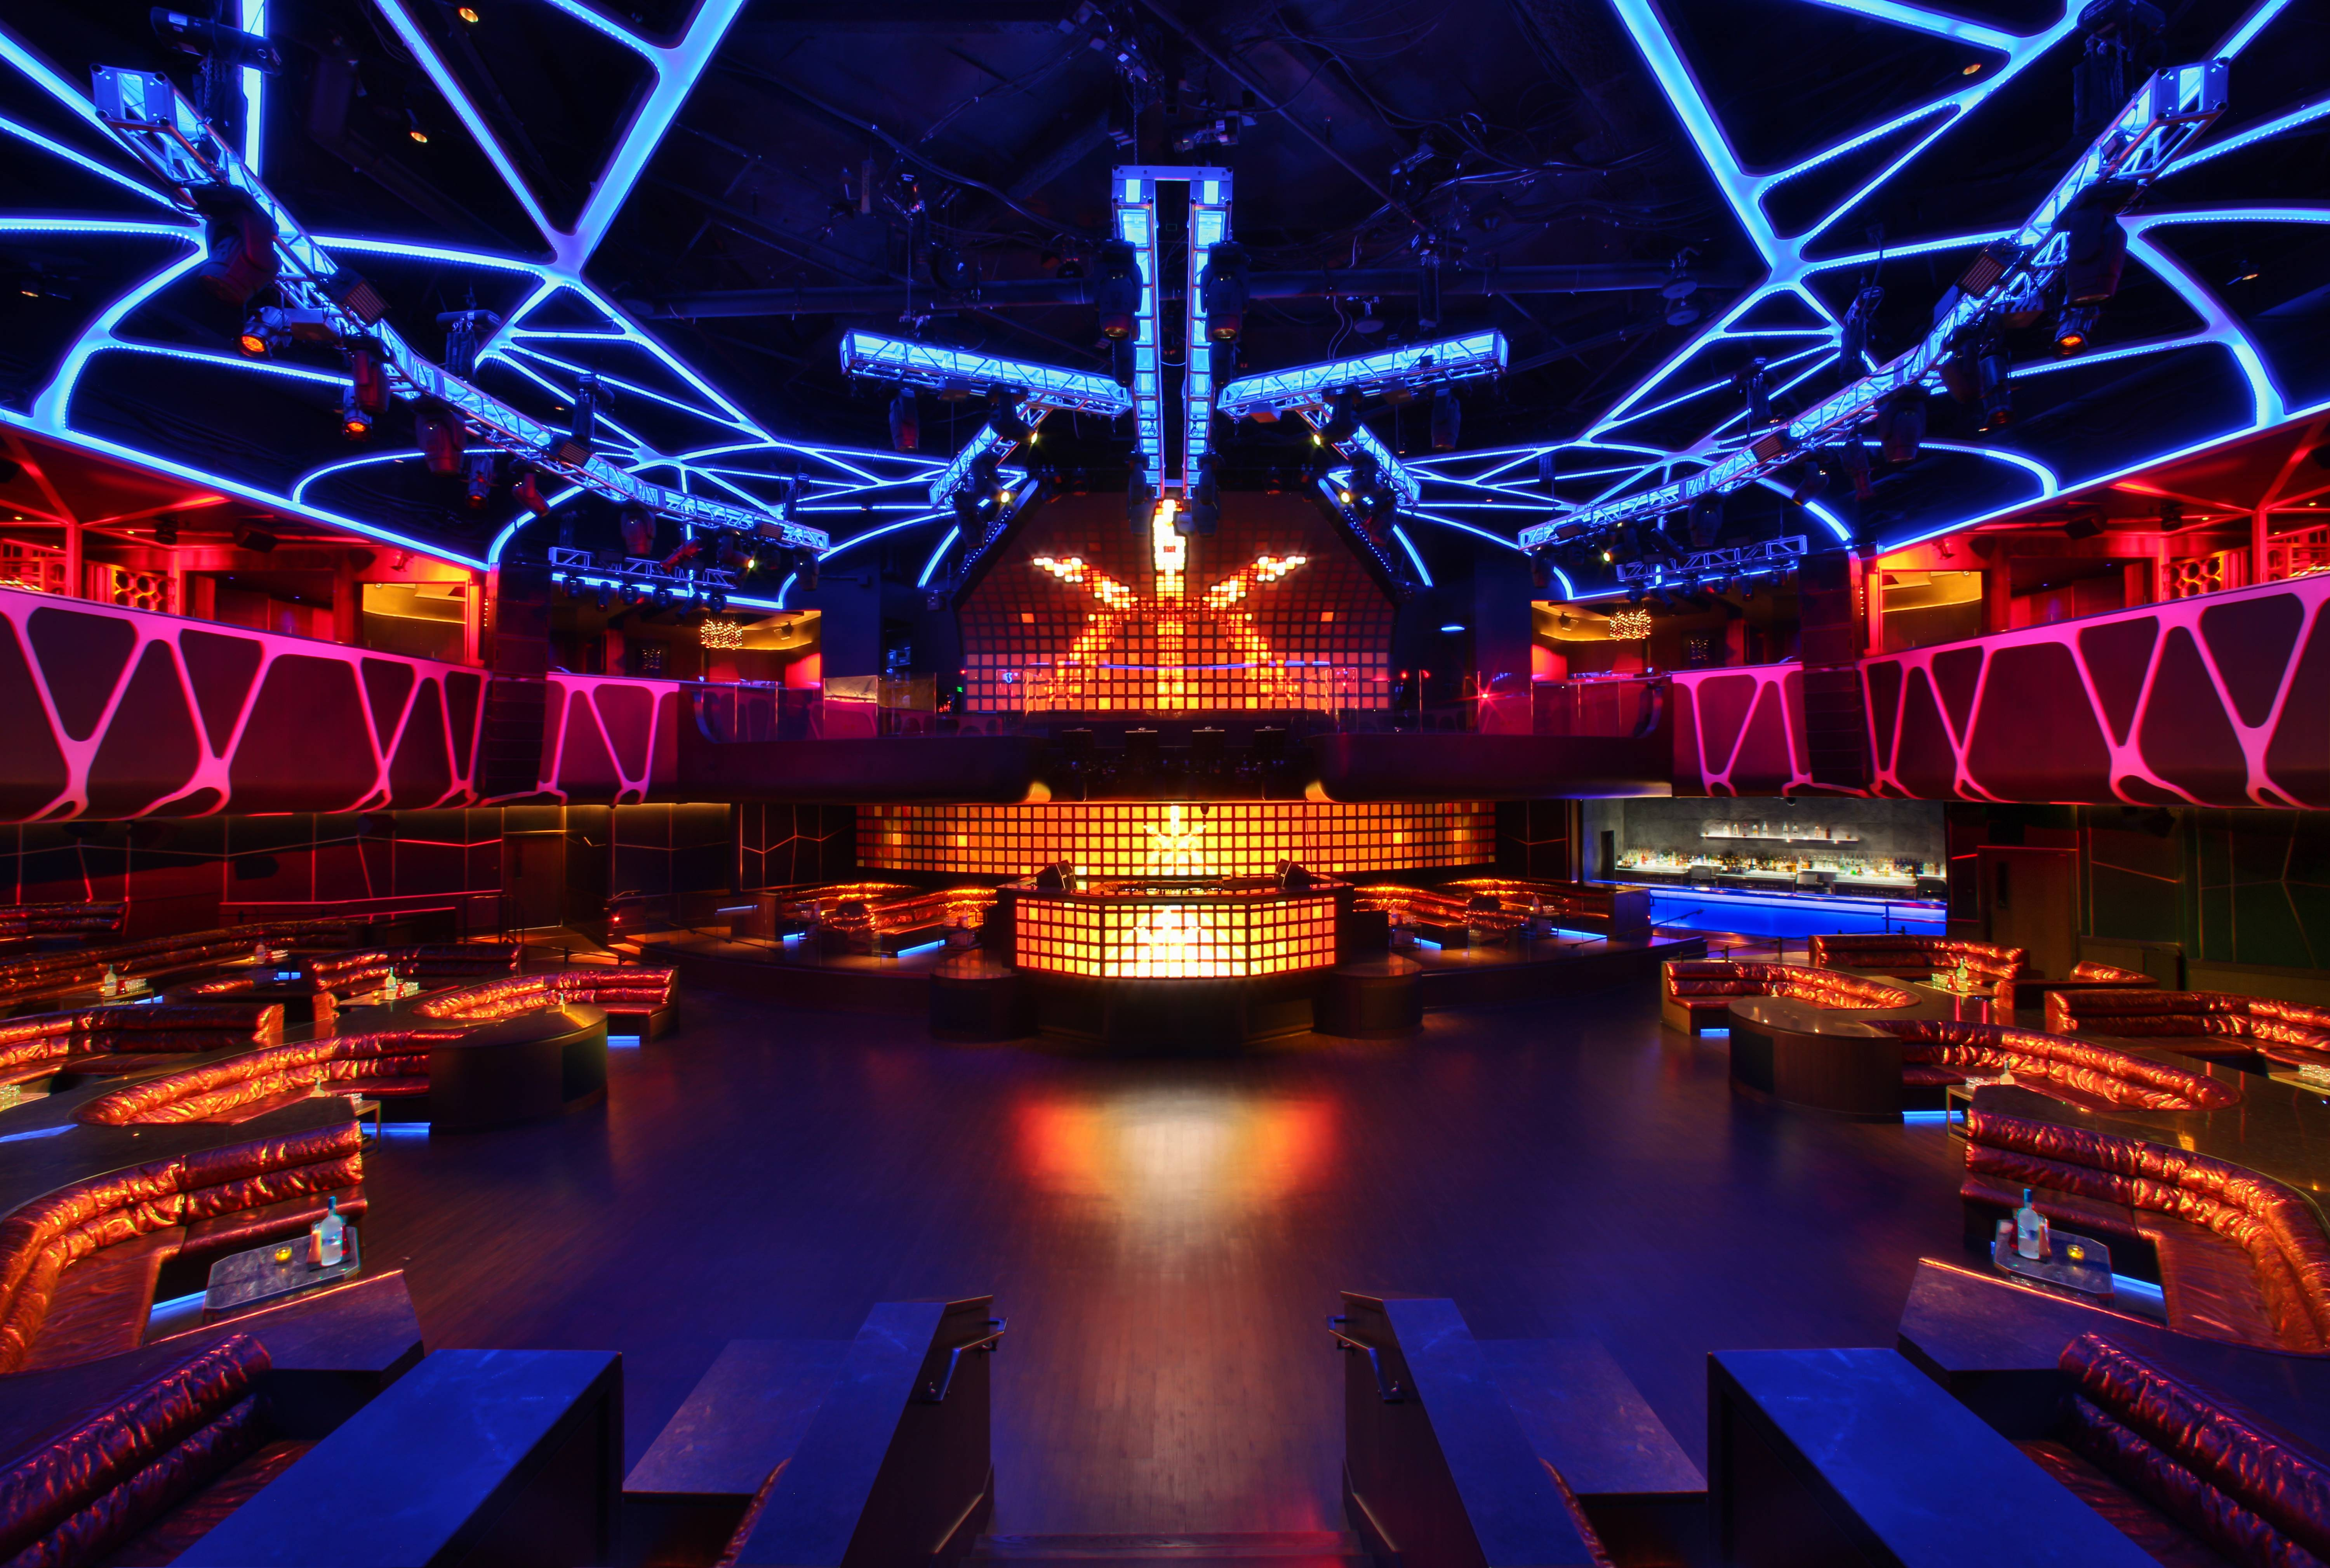 MAIN ROOM_NIGHTCLUB_HAKKASAN LAS VEGAS